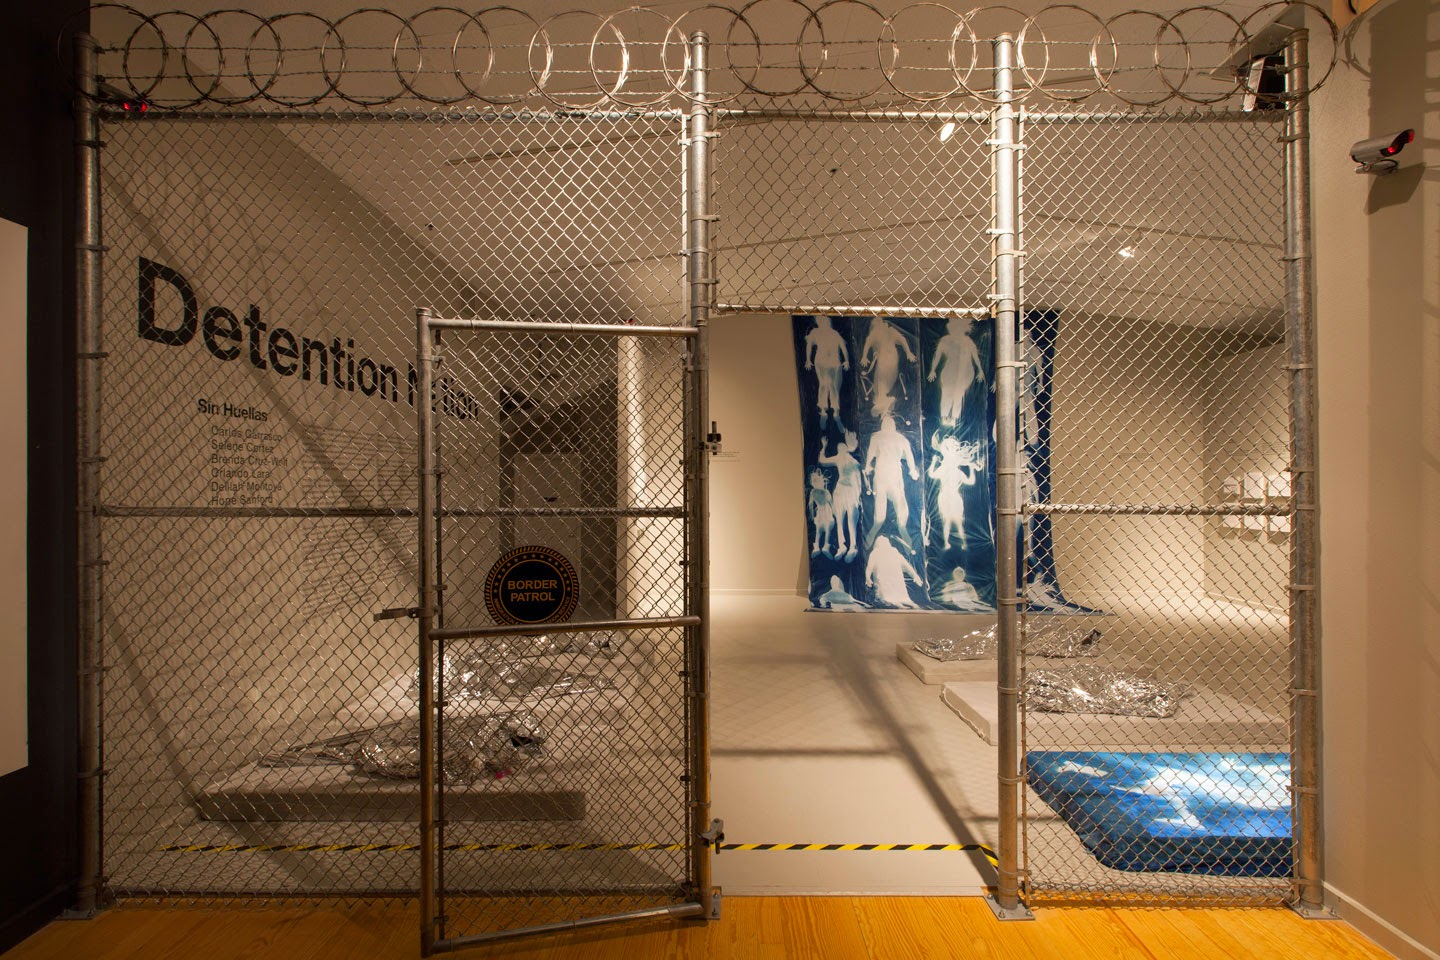 "Sin Huellas (Without Fingerprints), ""Detention Nation"", 2014, Installation at STATION museum"